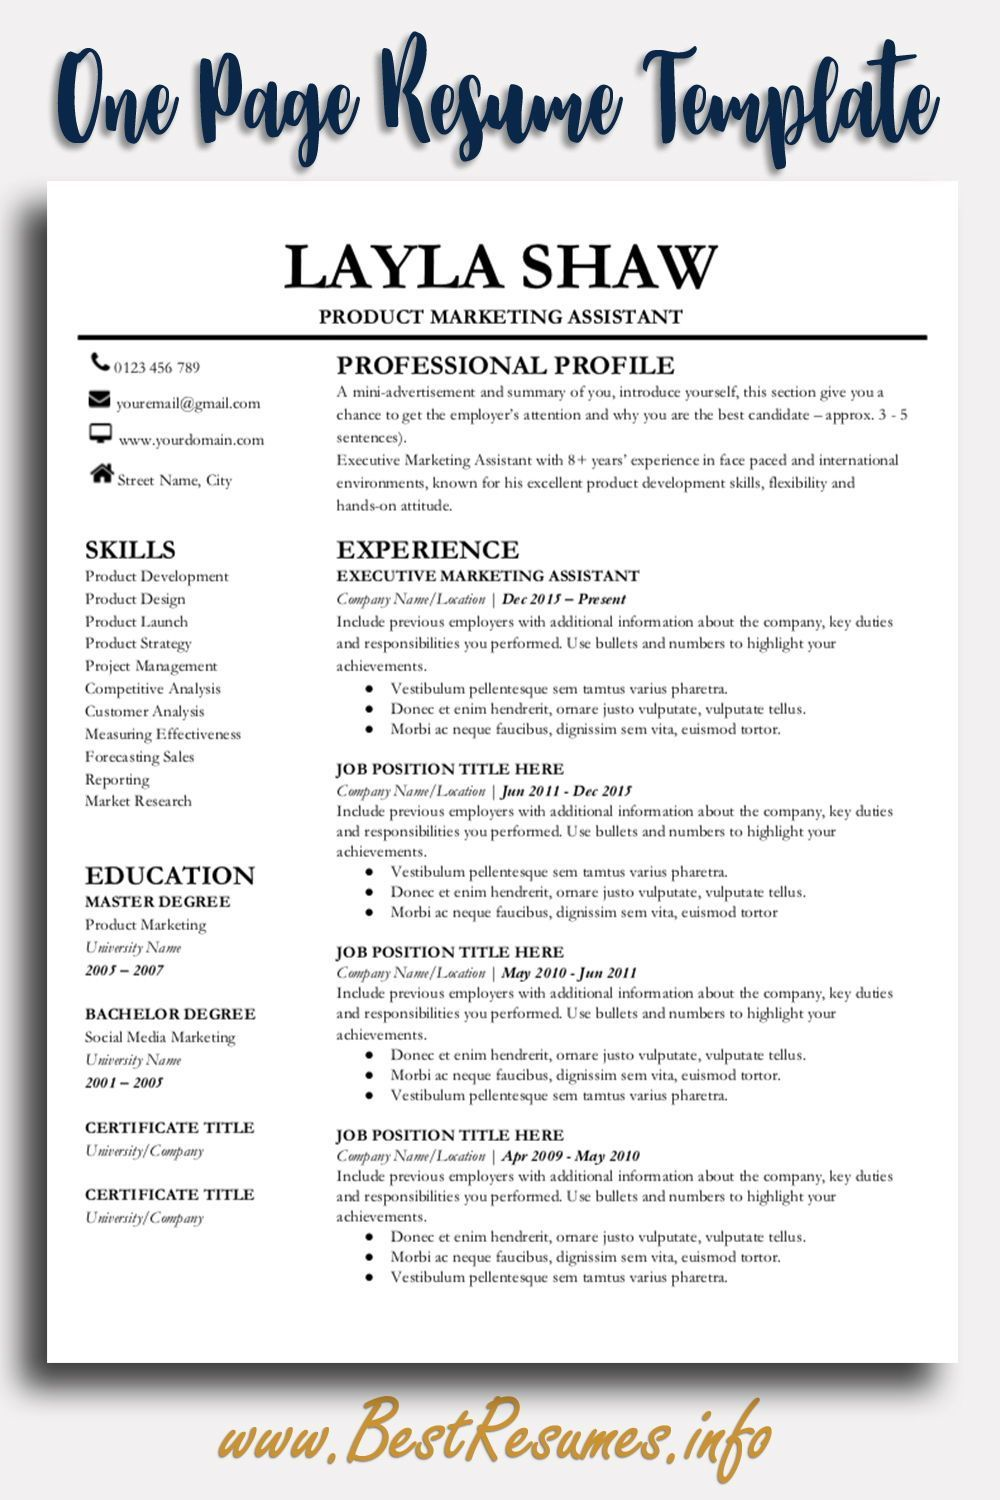 professional resume template layla shaw  business resume